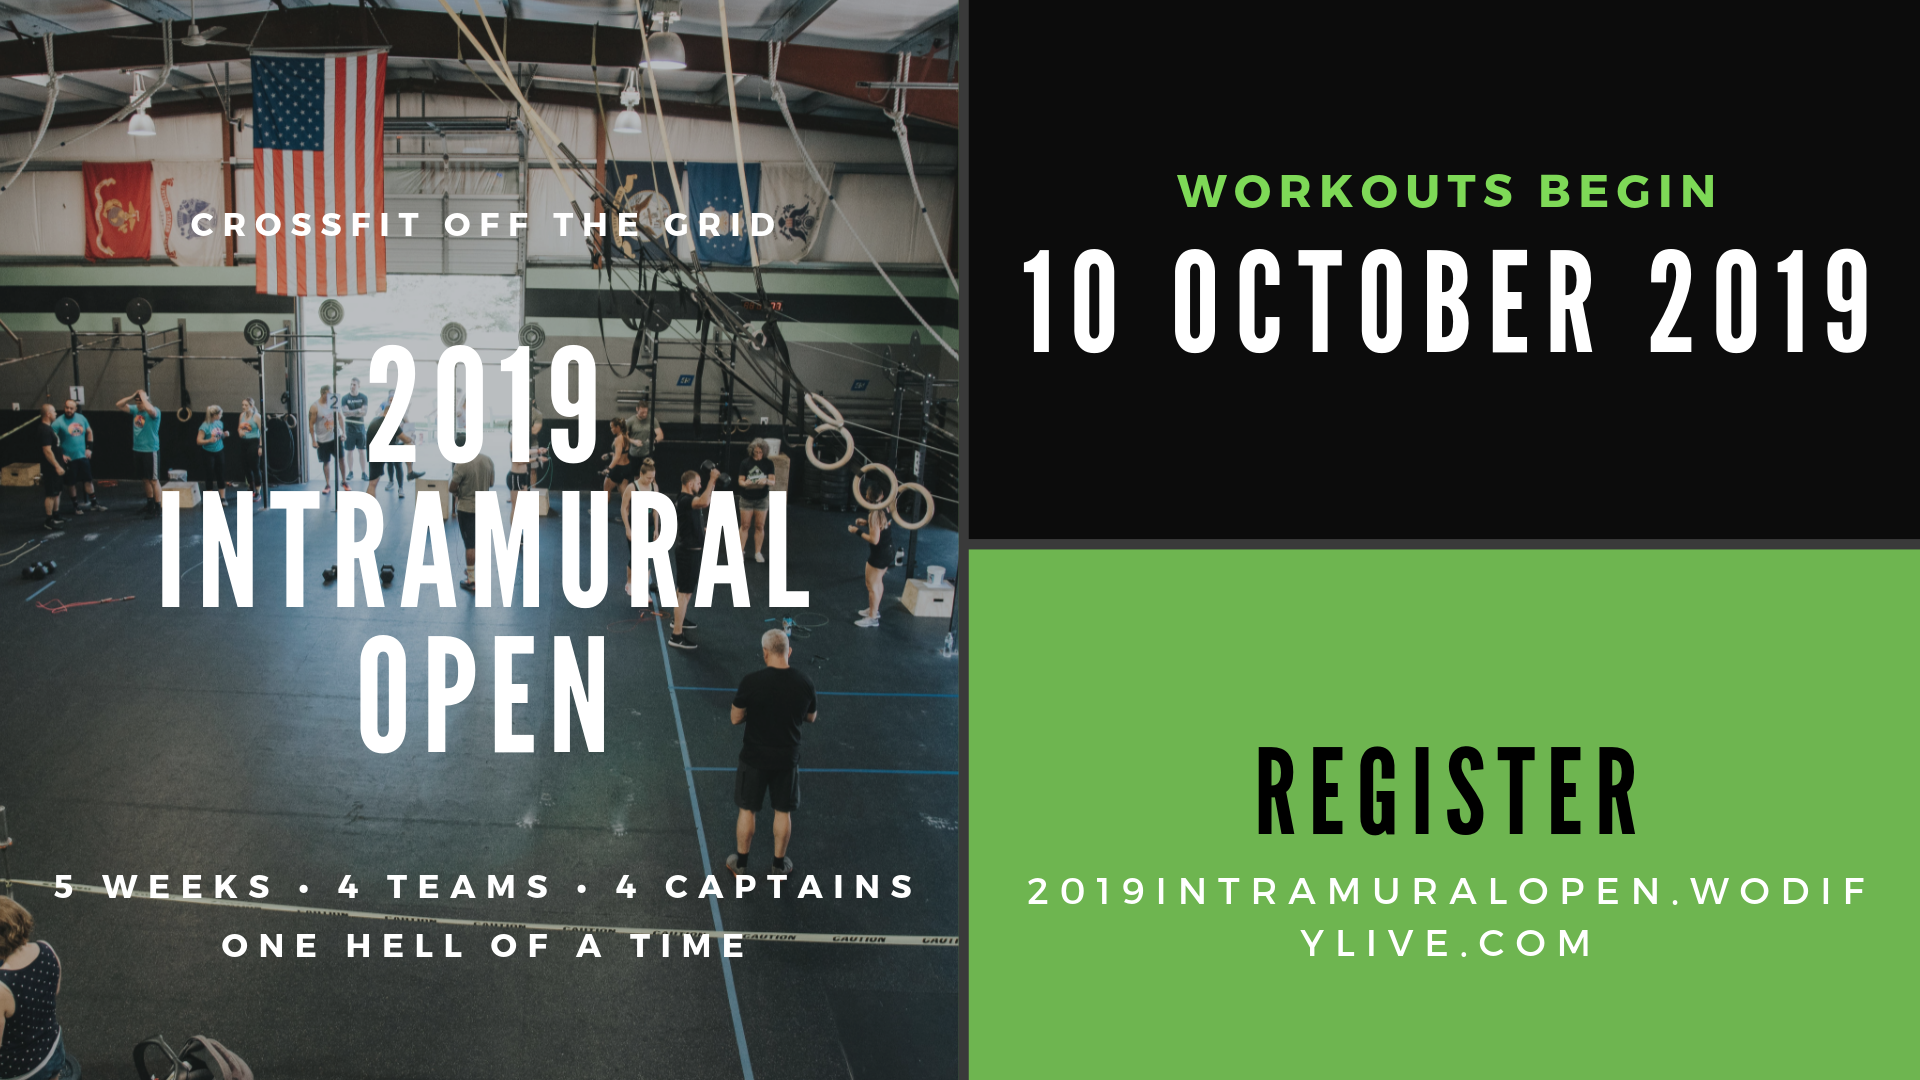 2019 CrossFit Off the Grid Intramural Open!